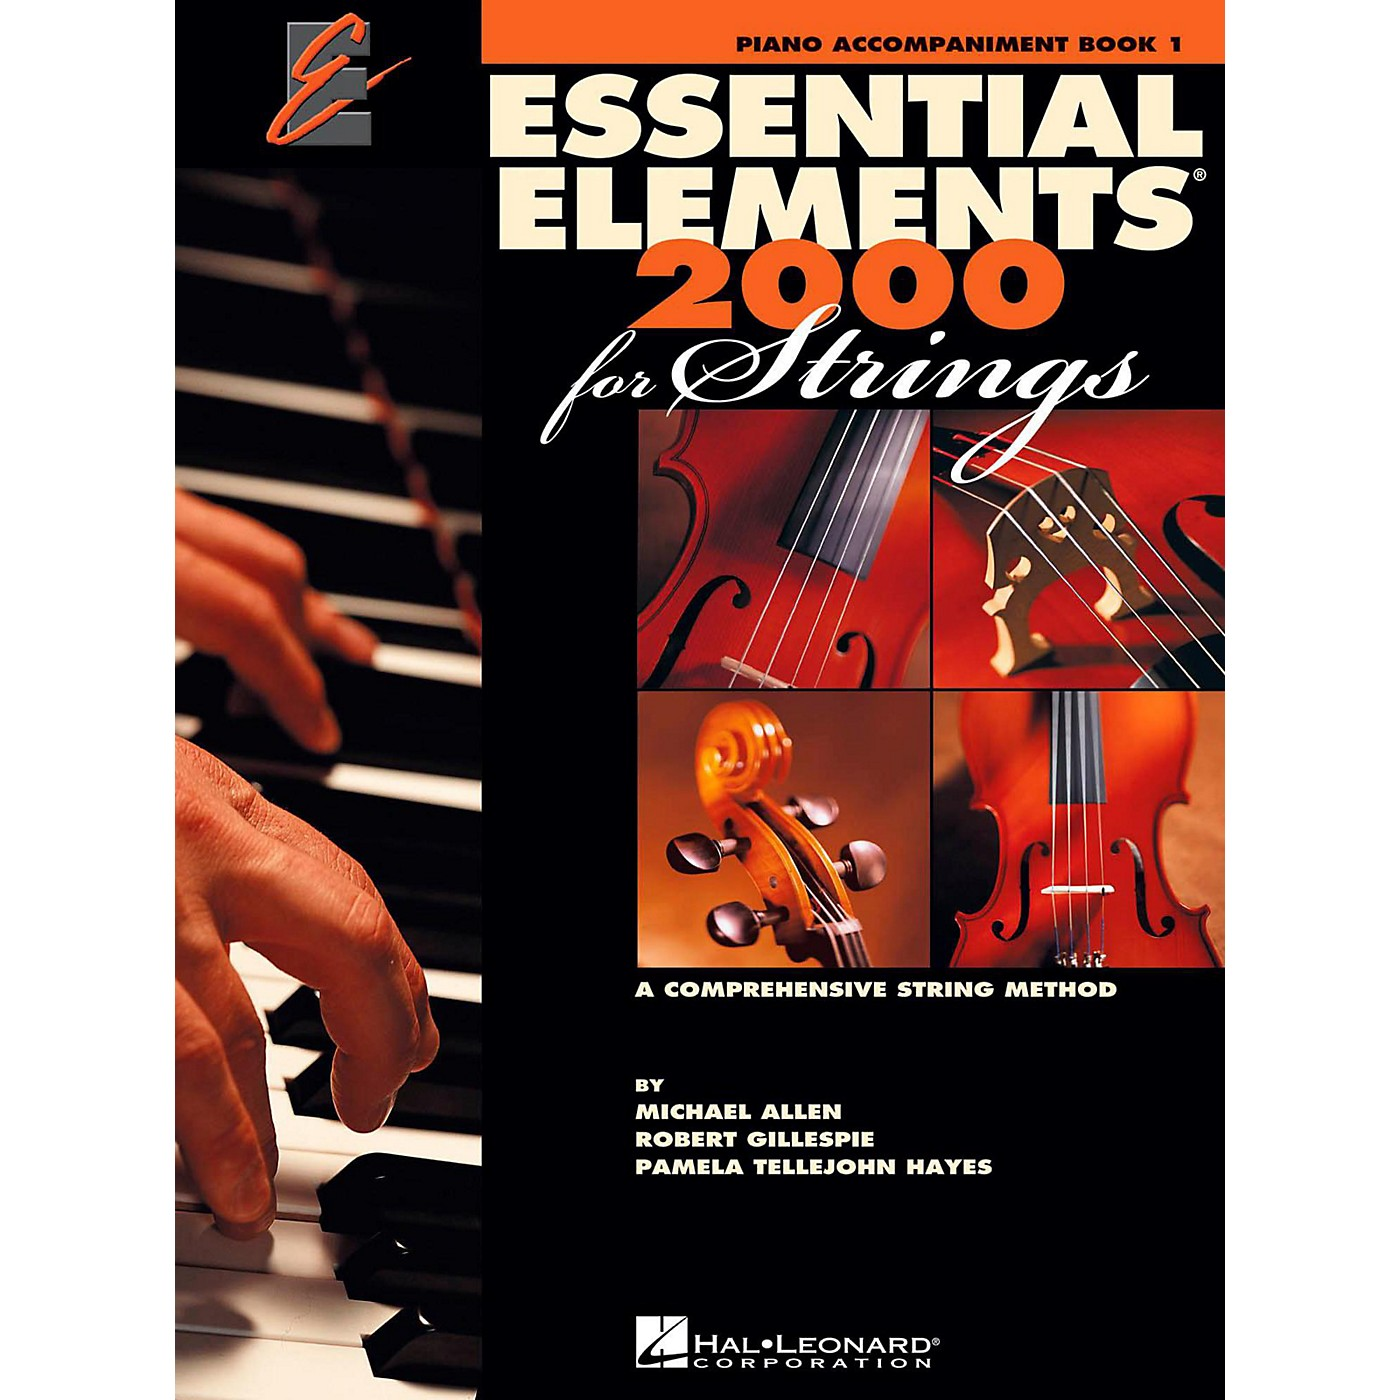 Hal Leonard Essential Elements for Strings - Piano Accompaniment (Book 1) thumbnail